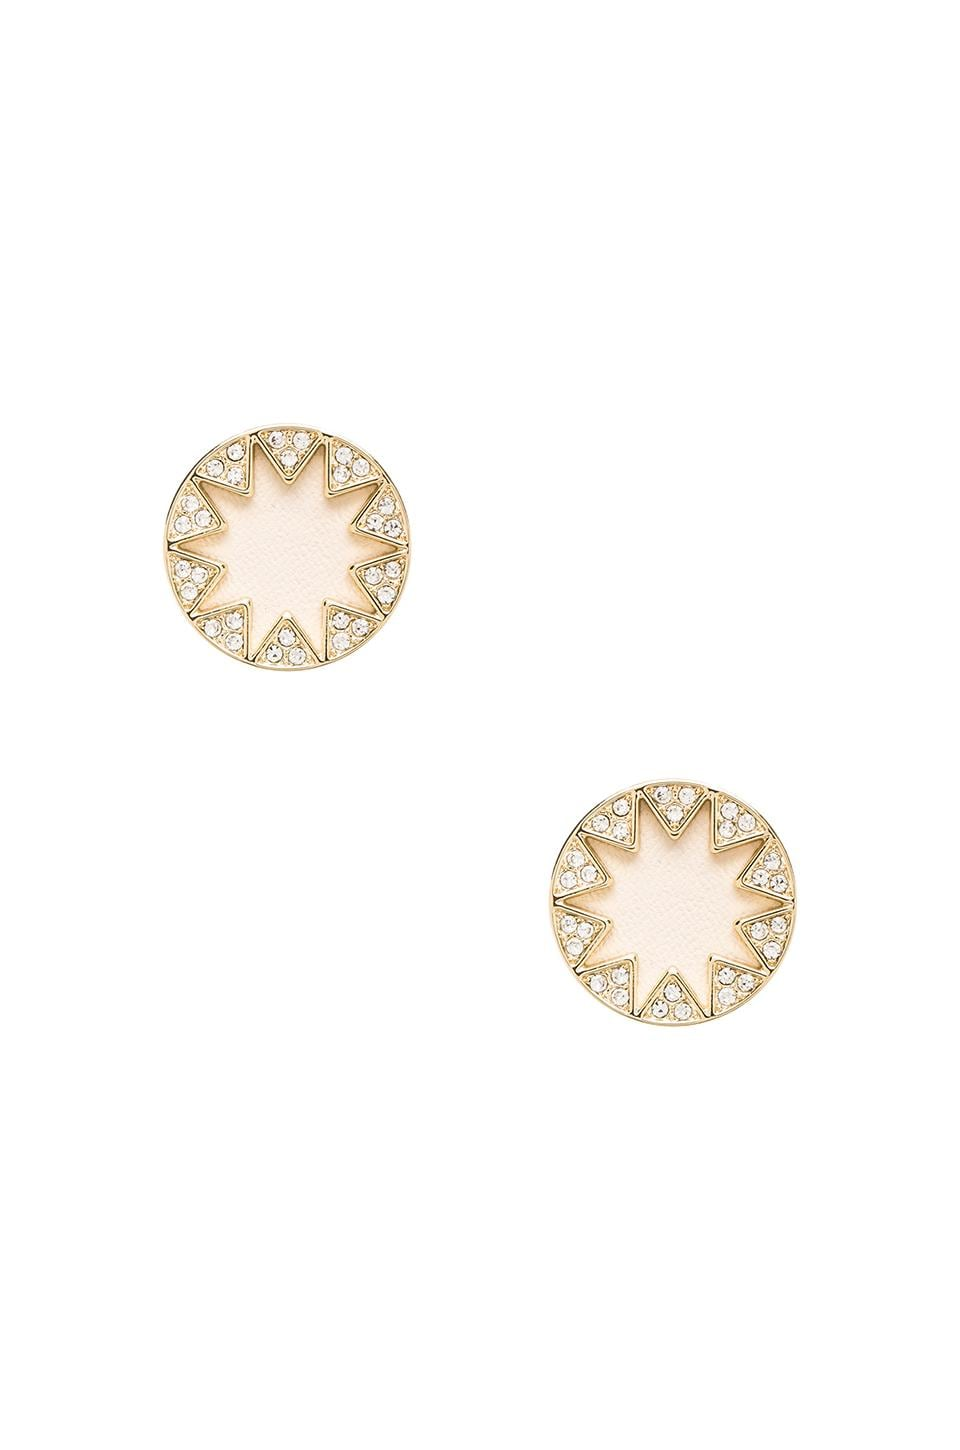 House of Harlow Sunburst Pave Earrings in Gold Tone Cream